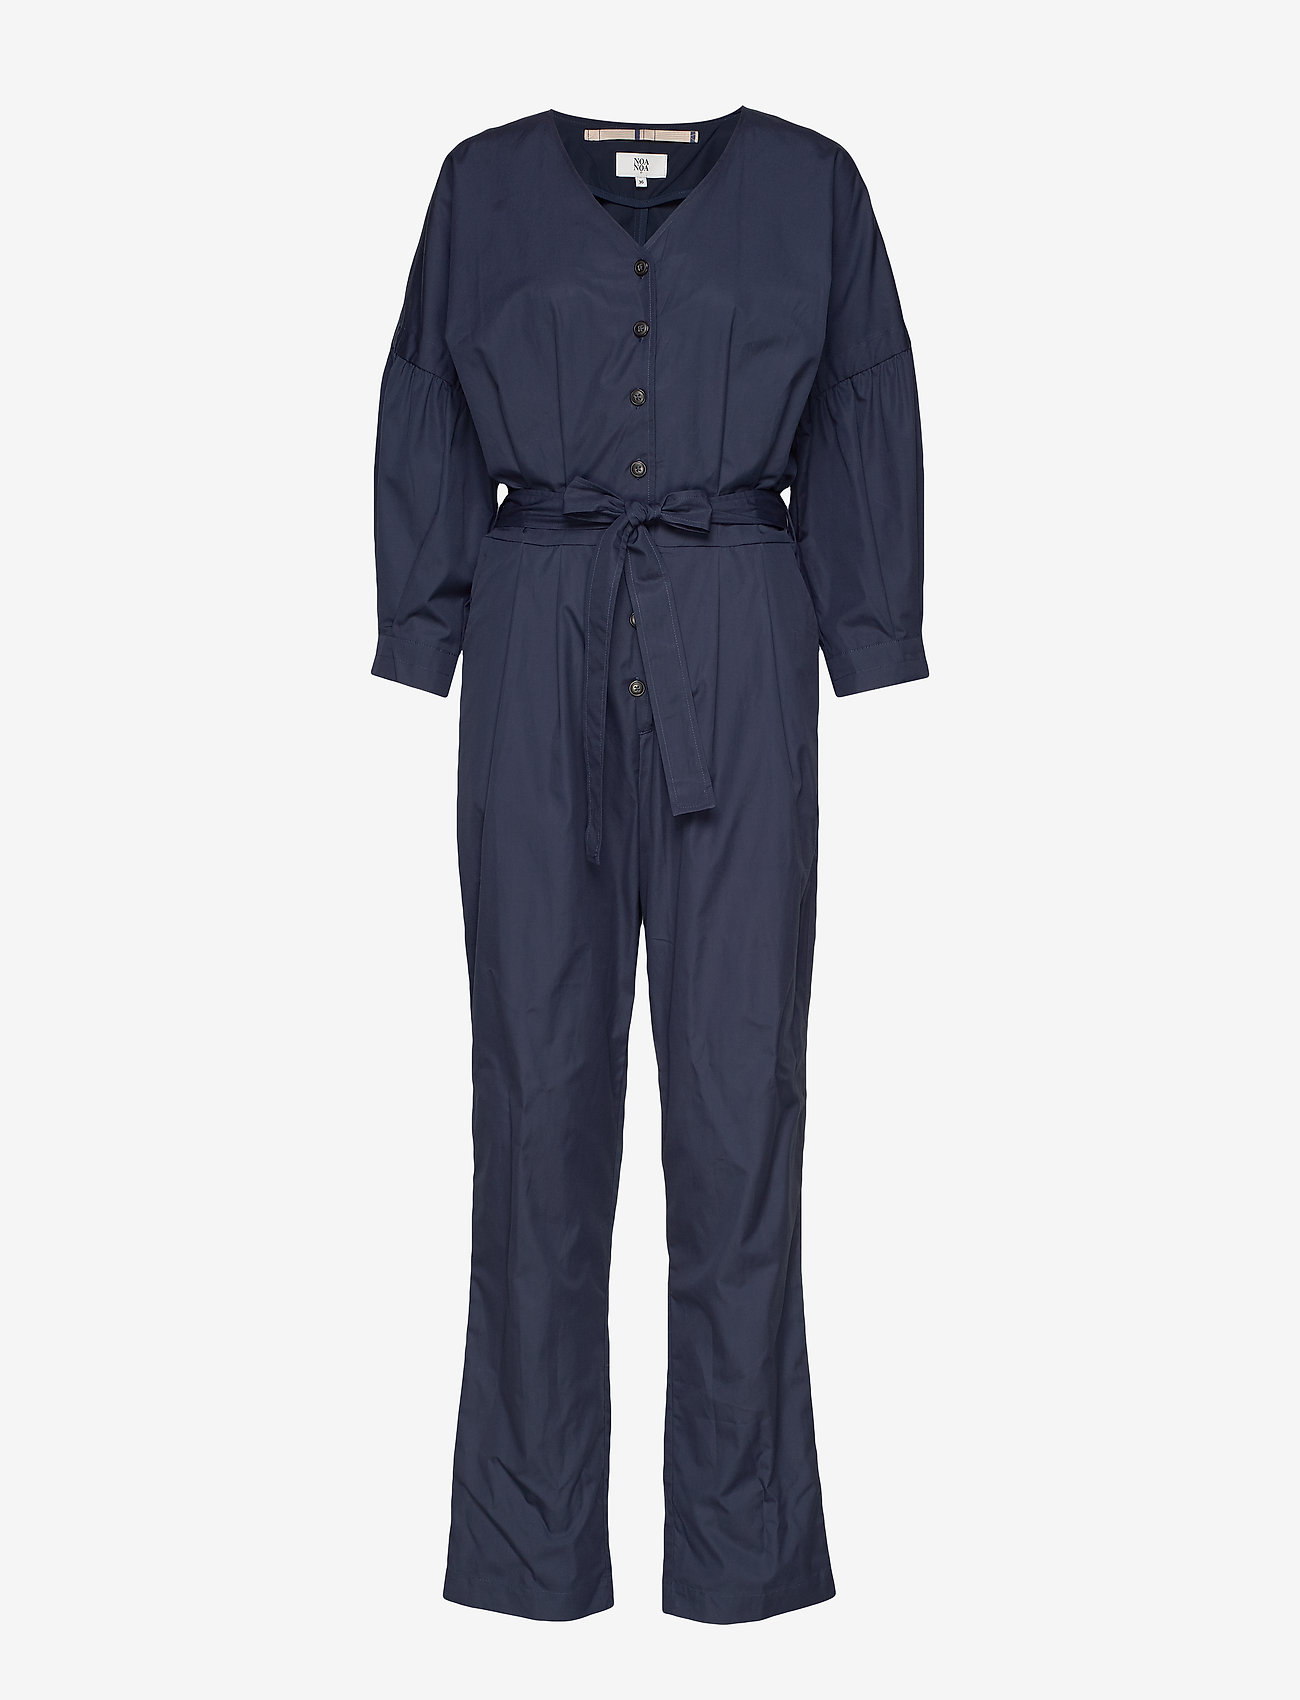 Noa Noa - Jumpsuit - jumpsuits - dress blues - 1